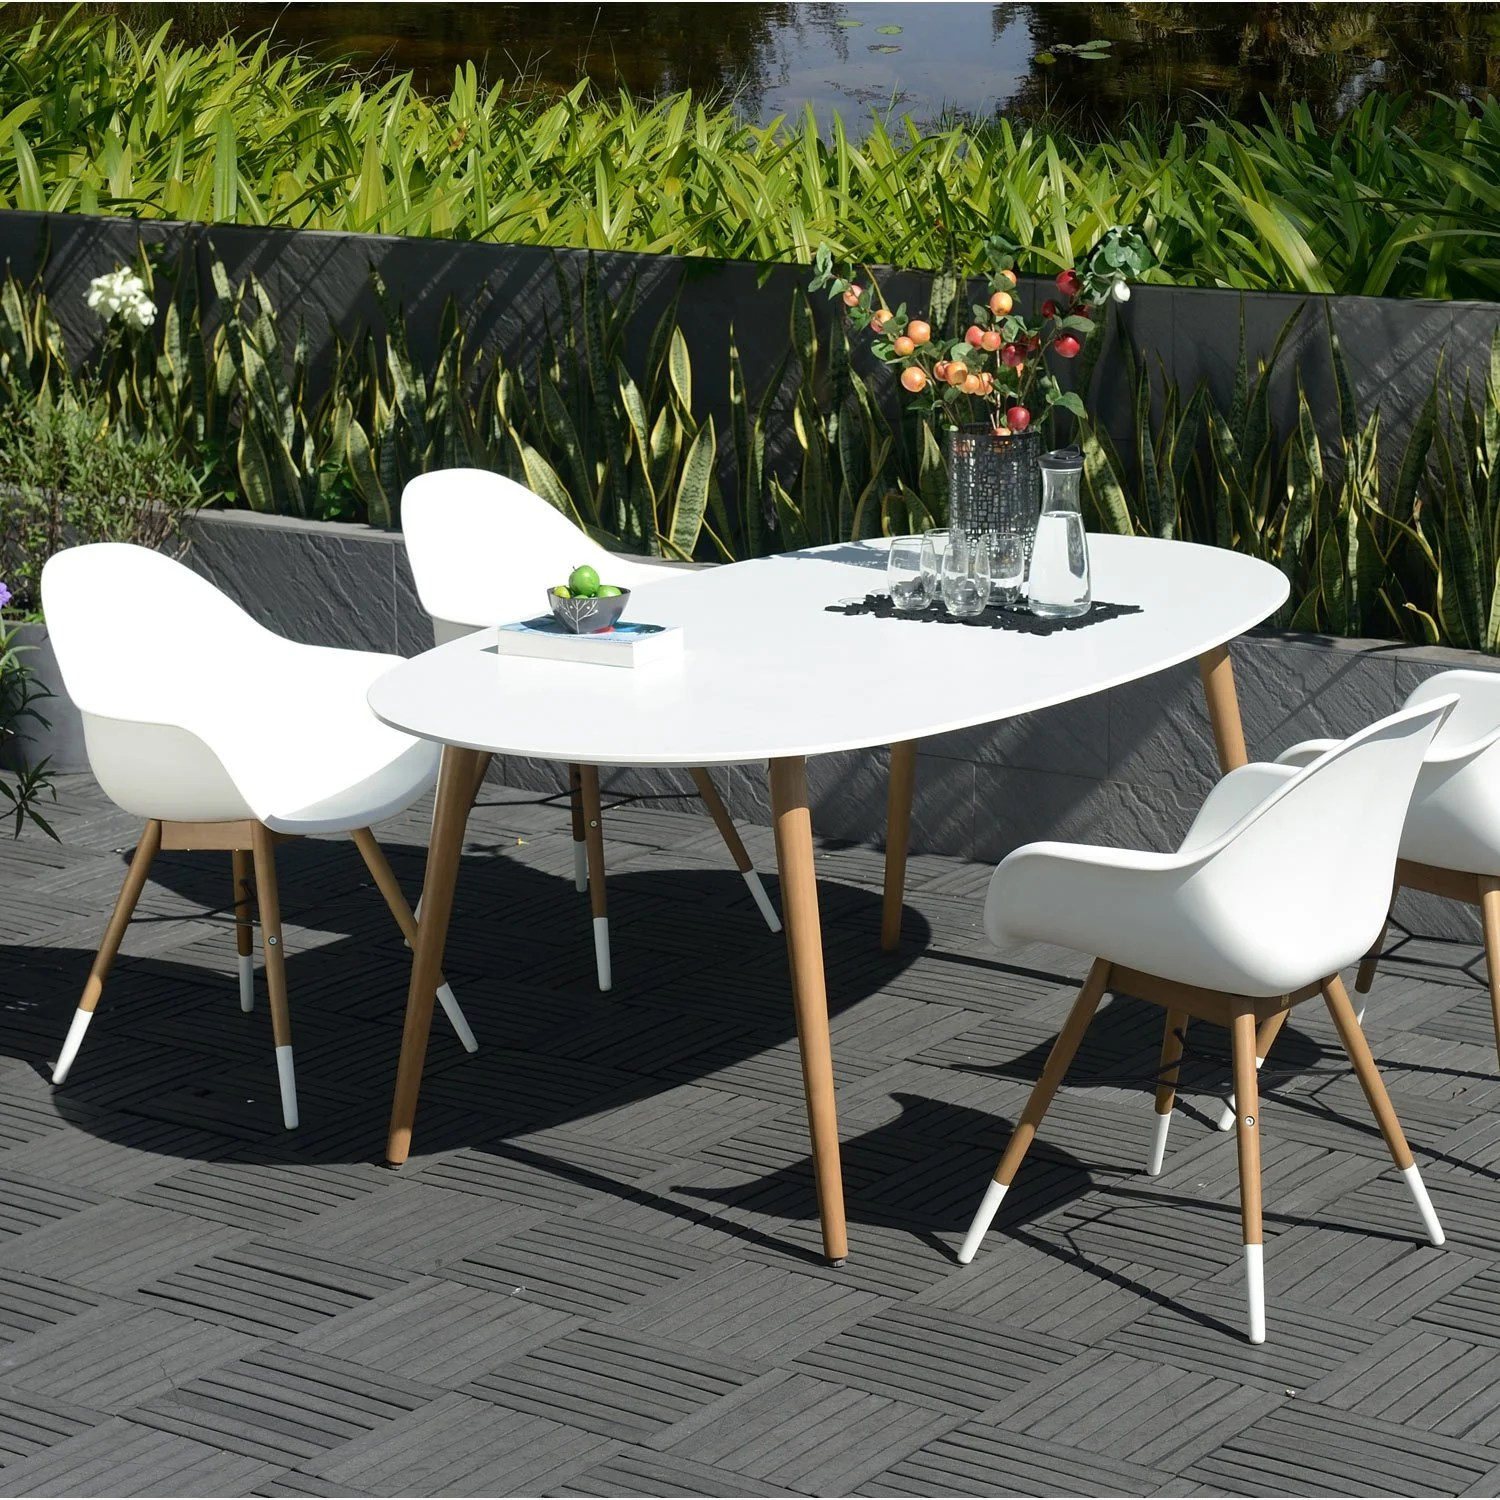 Leroy Merlin Table Exterieur Banc Exterieur Leroy Merlin Lovely Meuble De Jardin Rotin